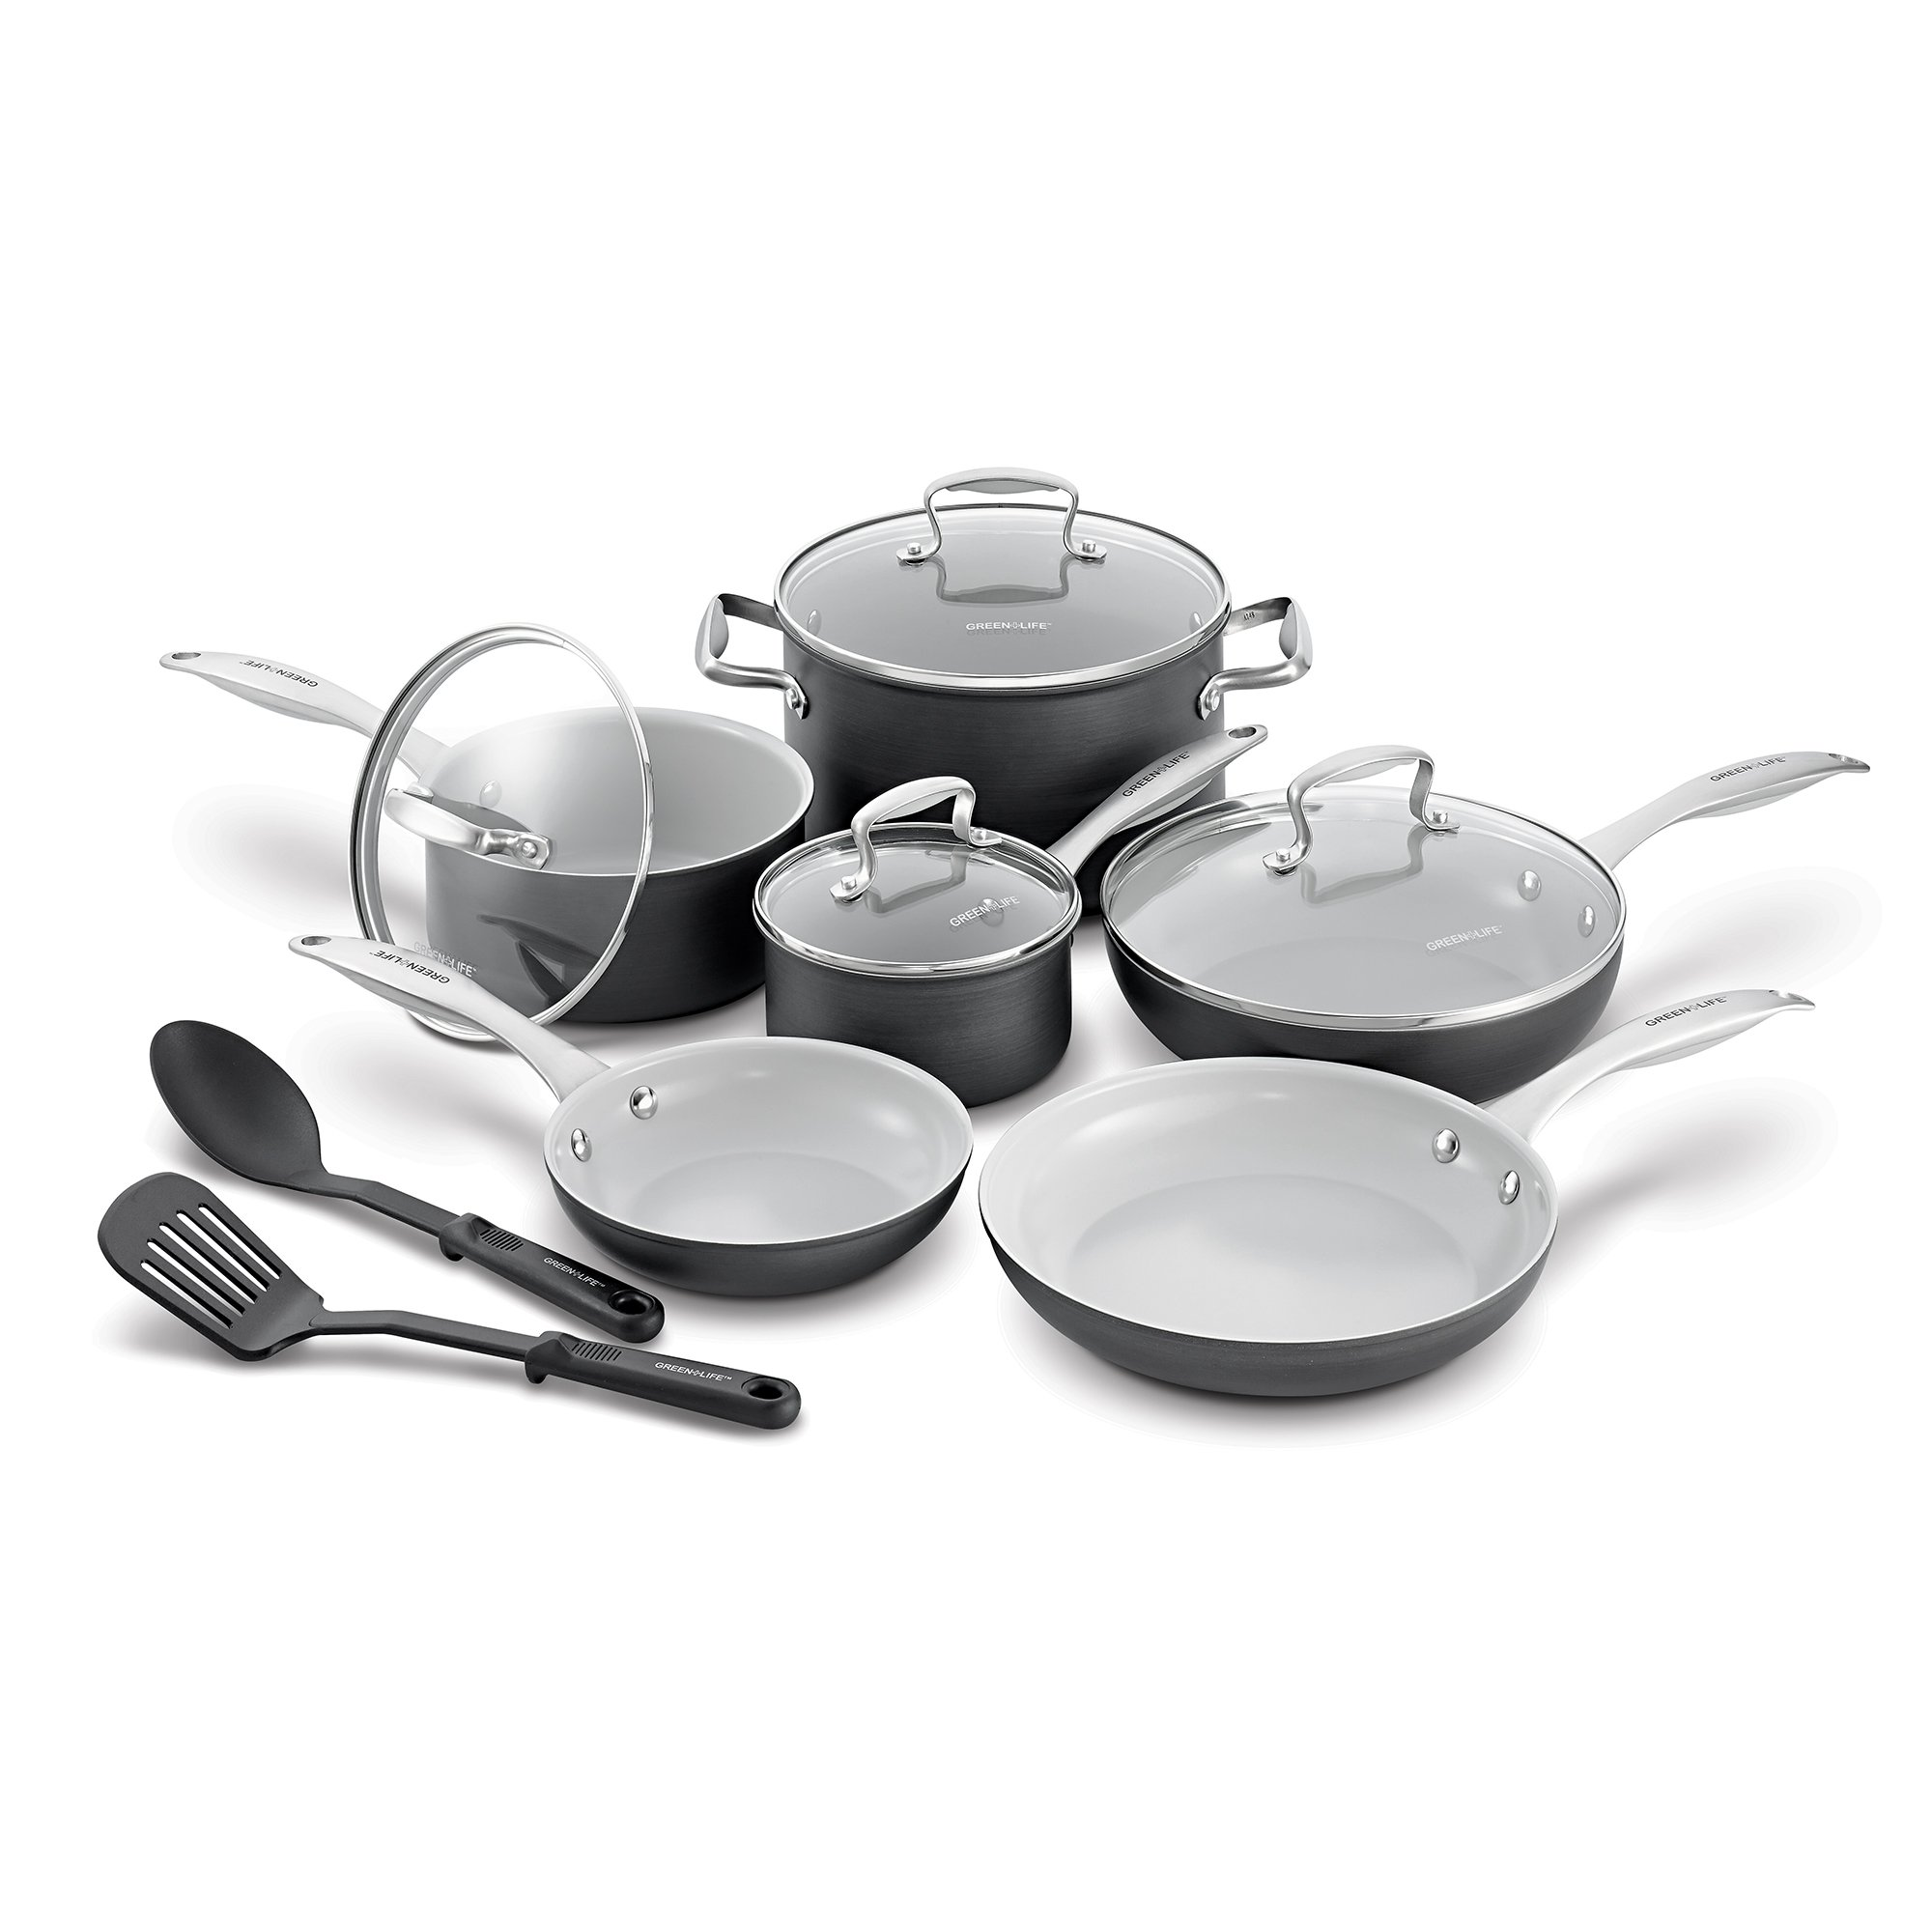 GreenLife CC000801-001 Classic Pro Hard Anodized Healthy Ceramic Nonstick Metal Utensil Safe Dishwasher/Oven Safe Cookware set, 12-Piece, Grey by GreenLife